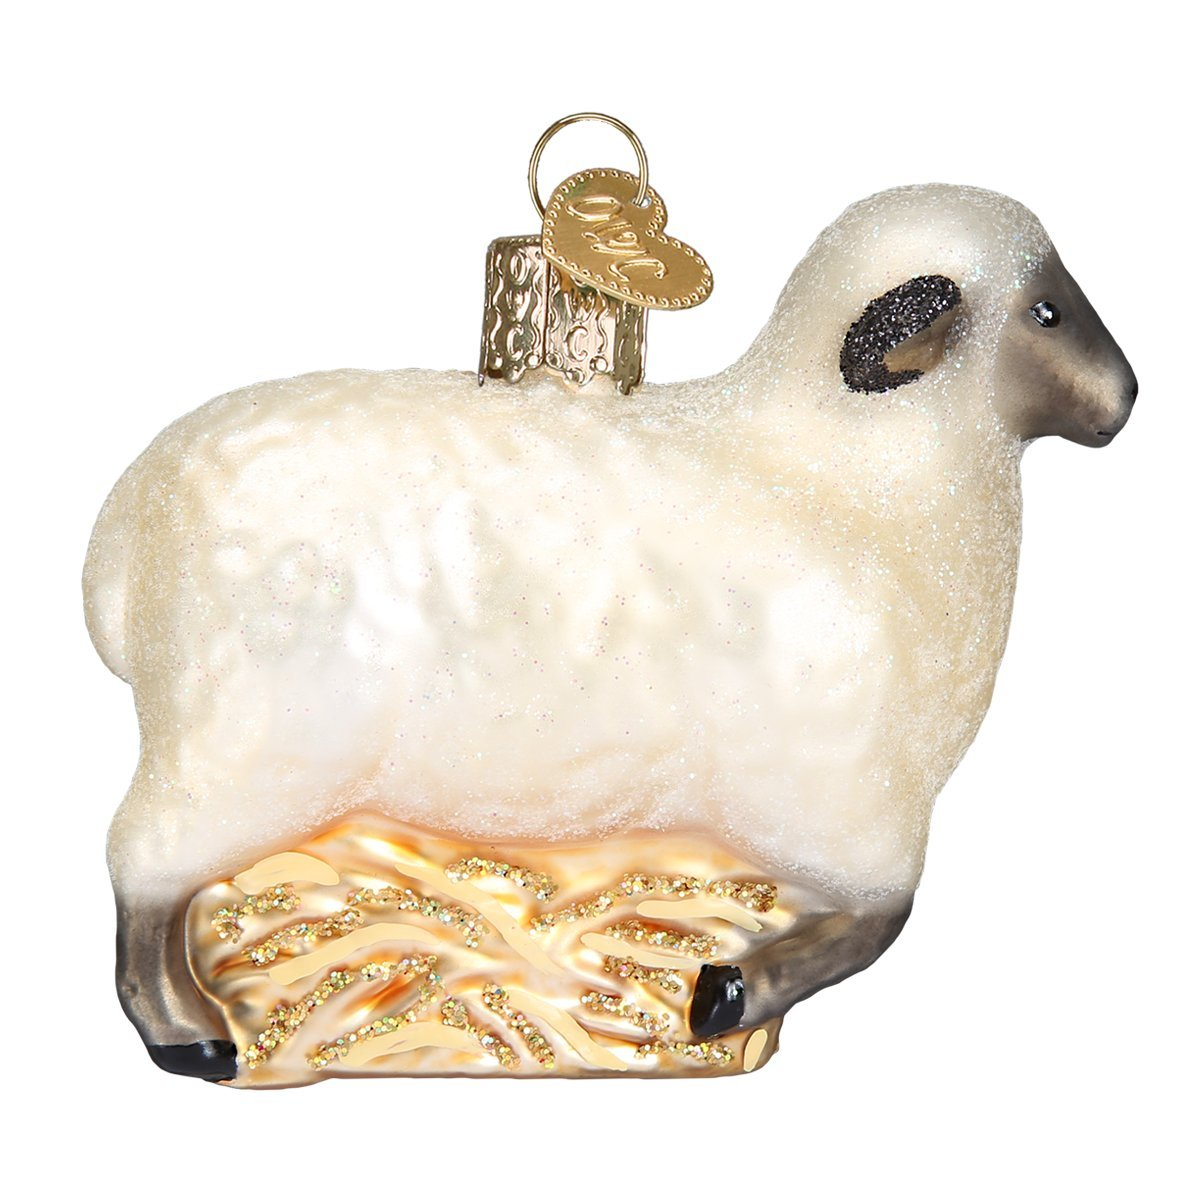 Old World Christmas Ornaments: Sheep Glass Blown Ornaments for Christmas Tree